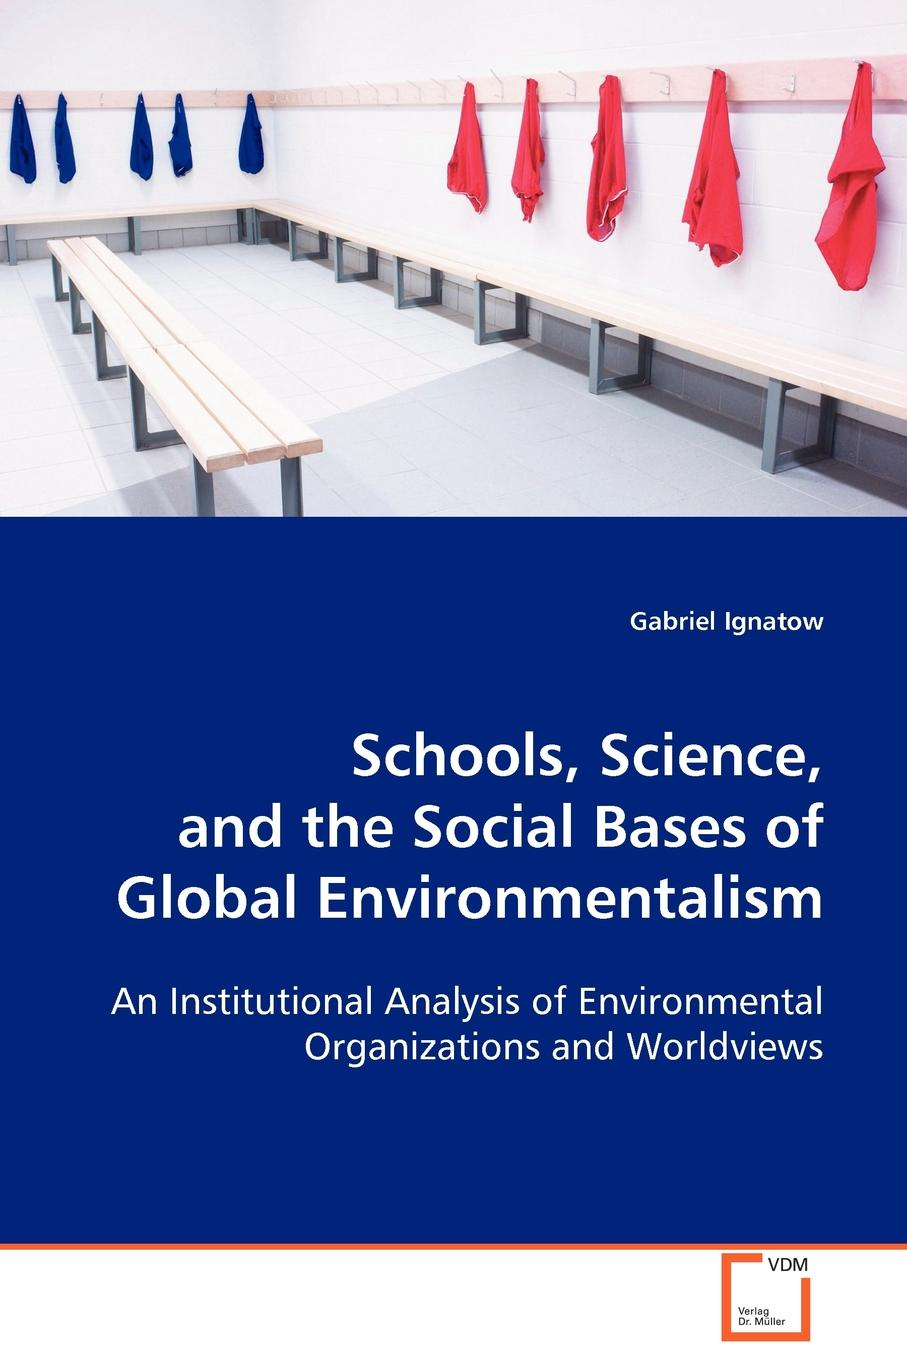 цены Gabriel Ignatow Schools, Science, and the Social Bases of Global Environmentalism